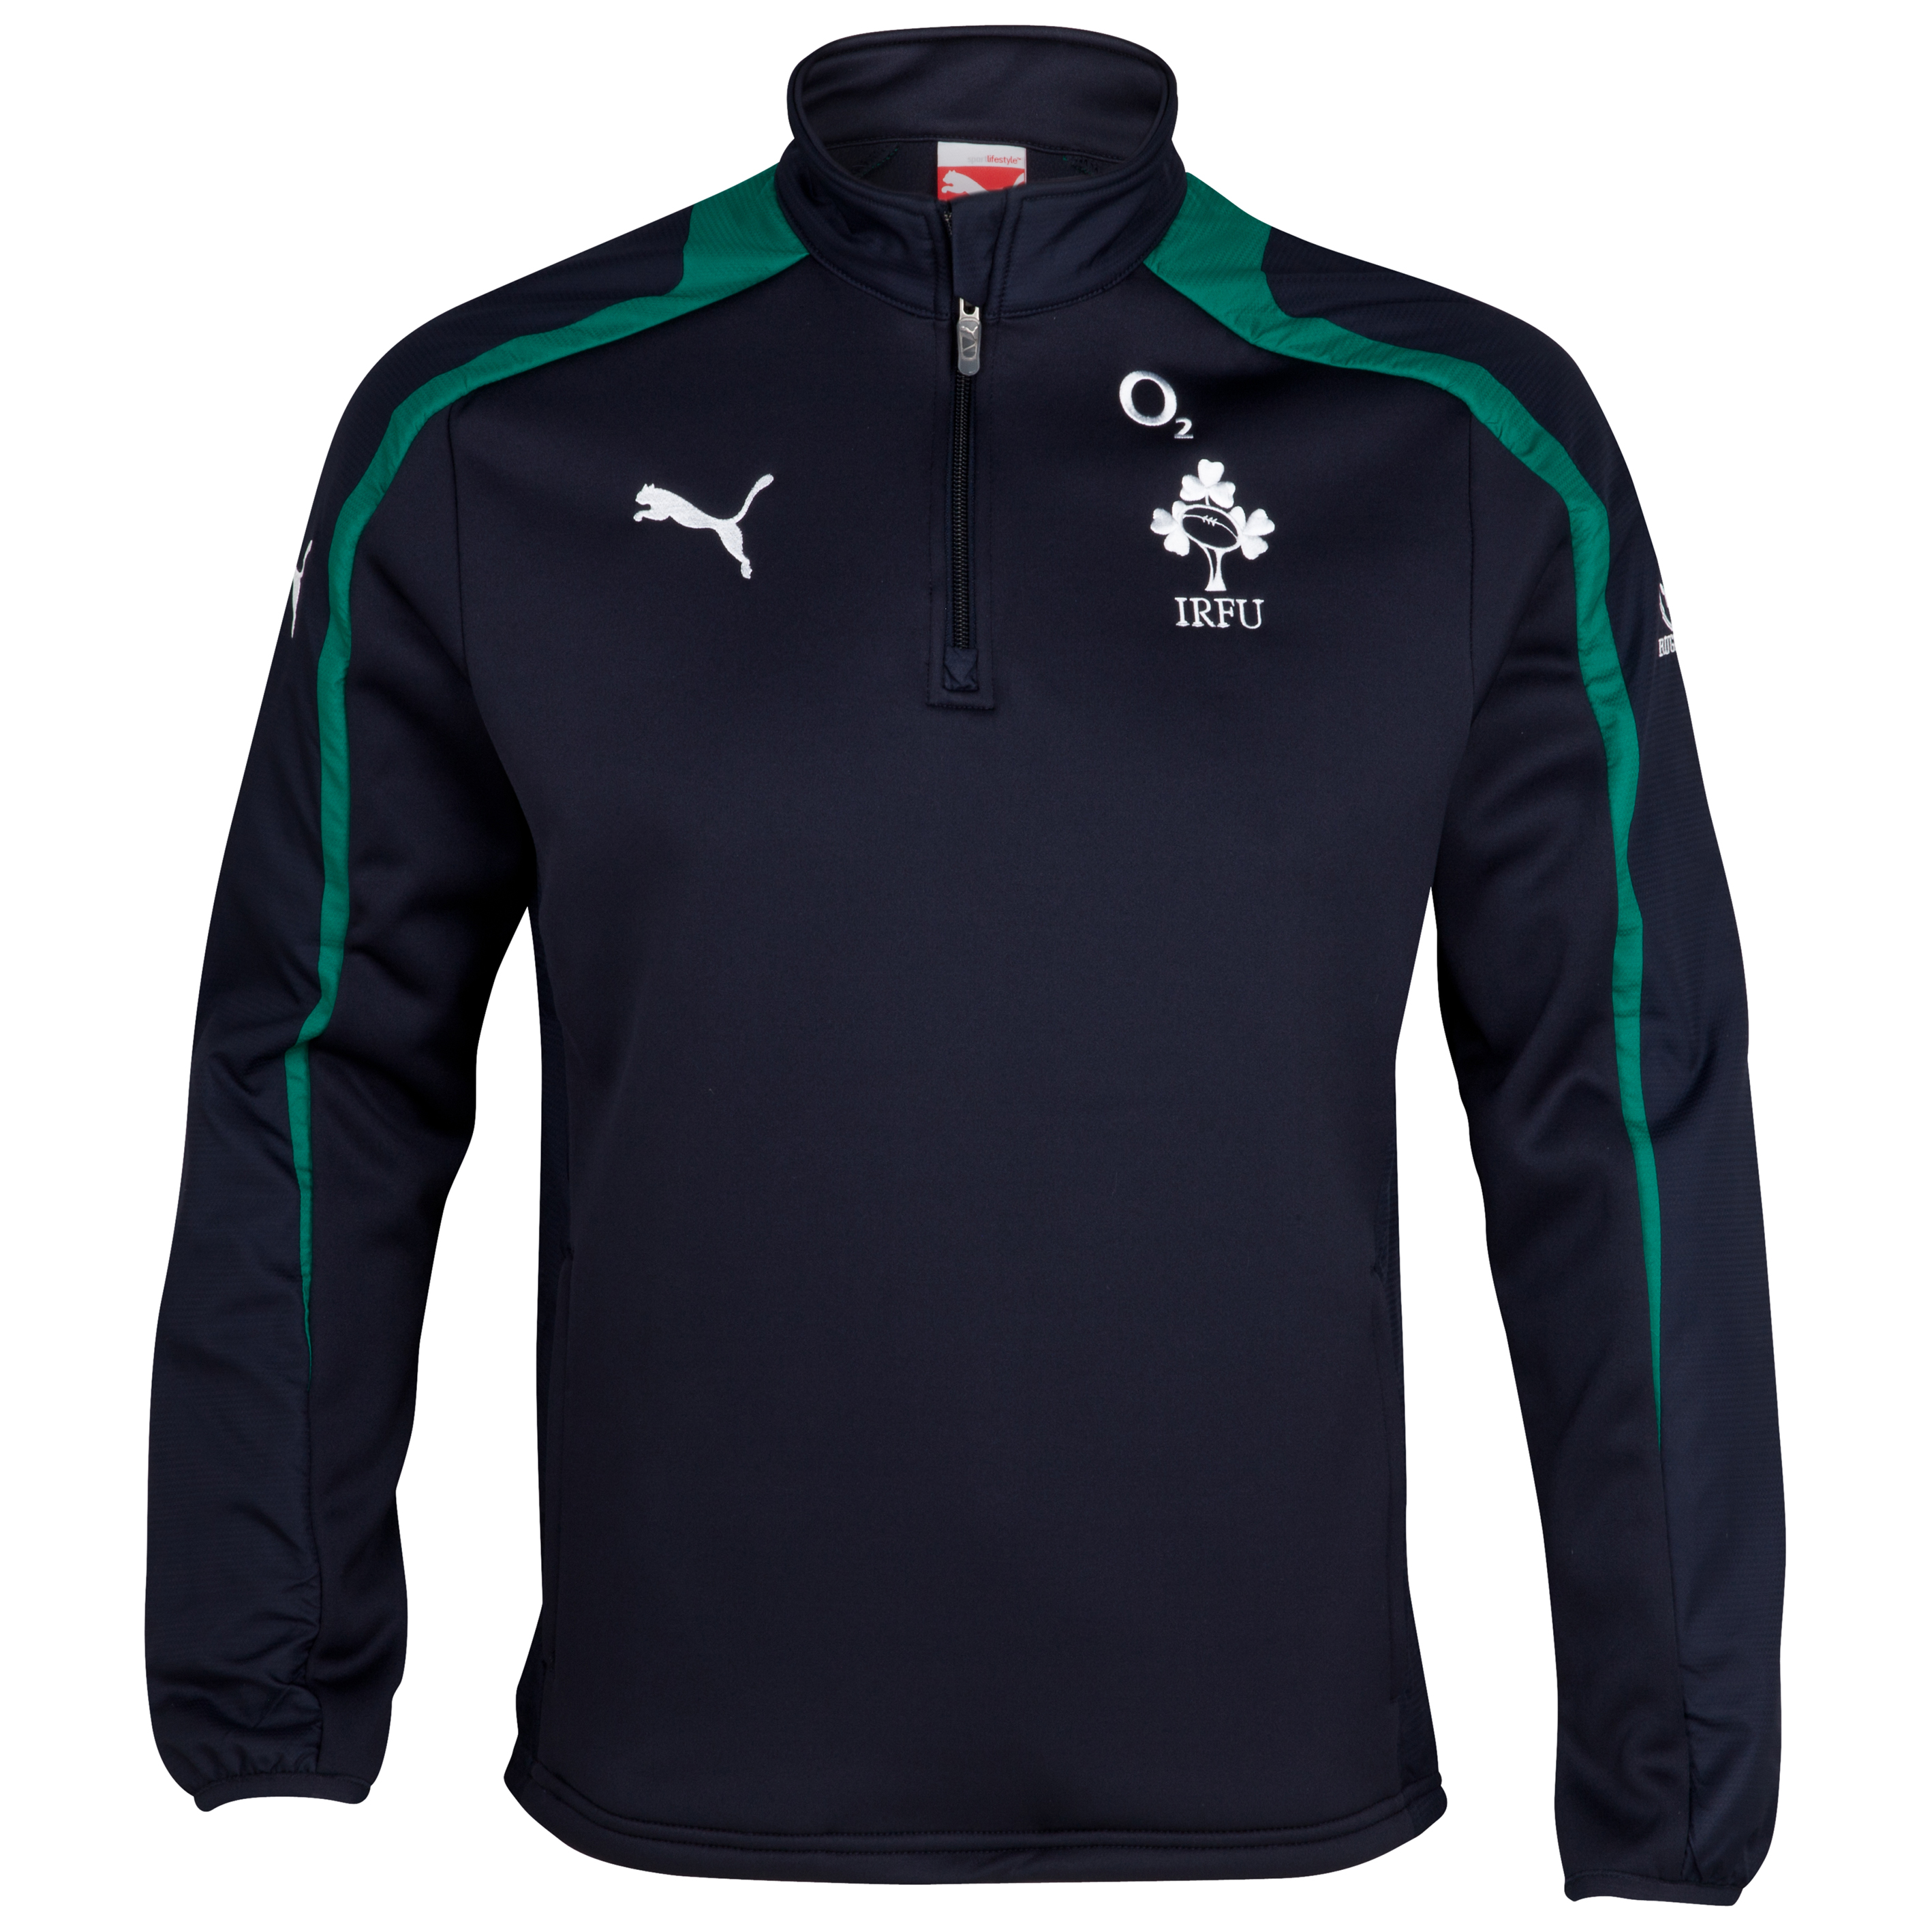 Ireland Rugby Training Fleece Top - New Navy/Powder Green/White